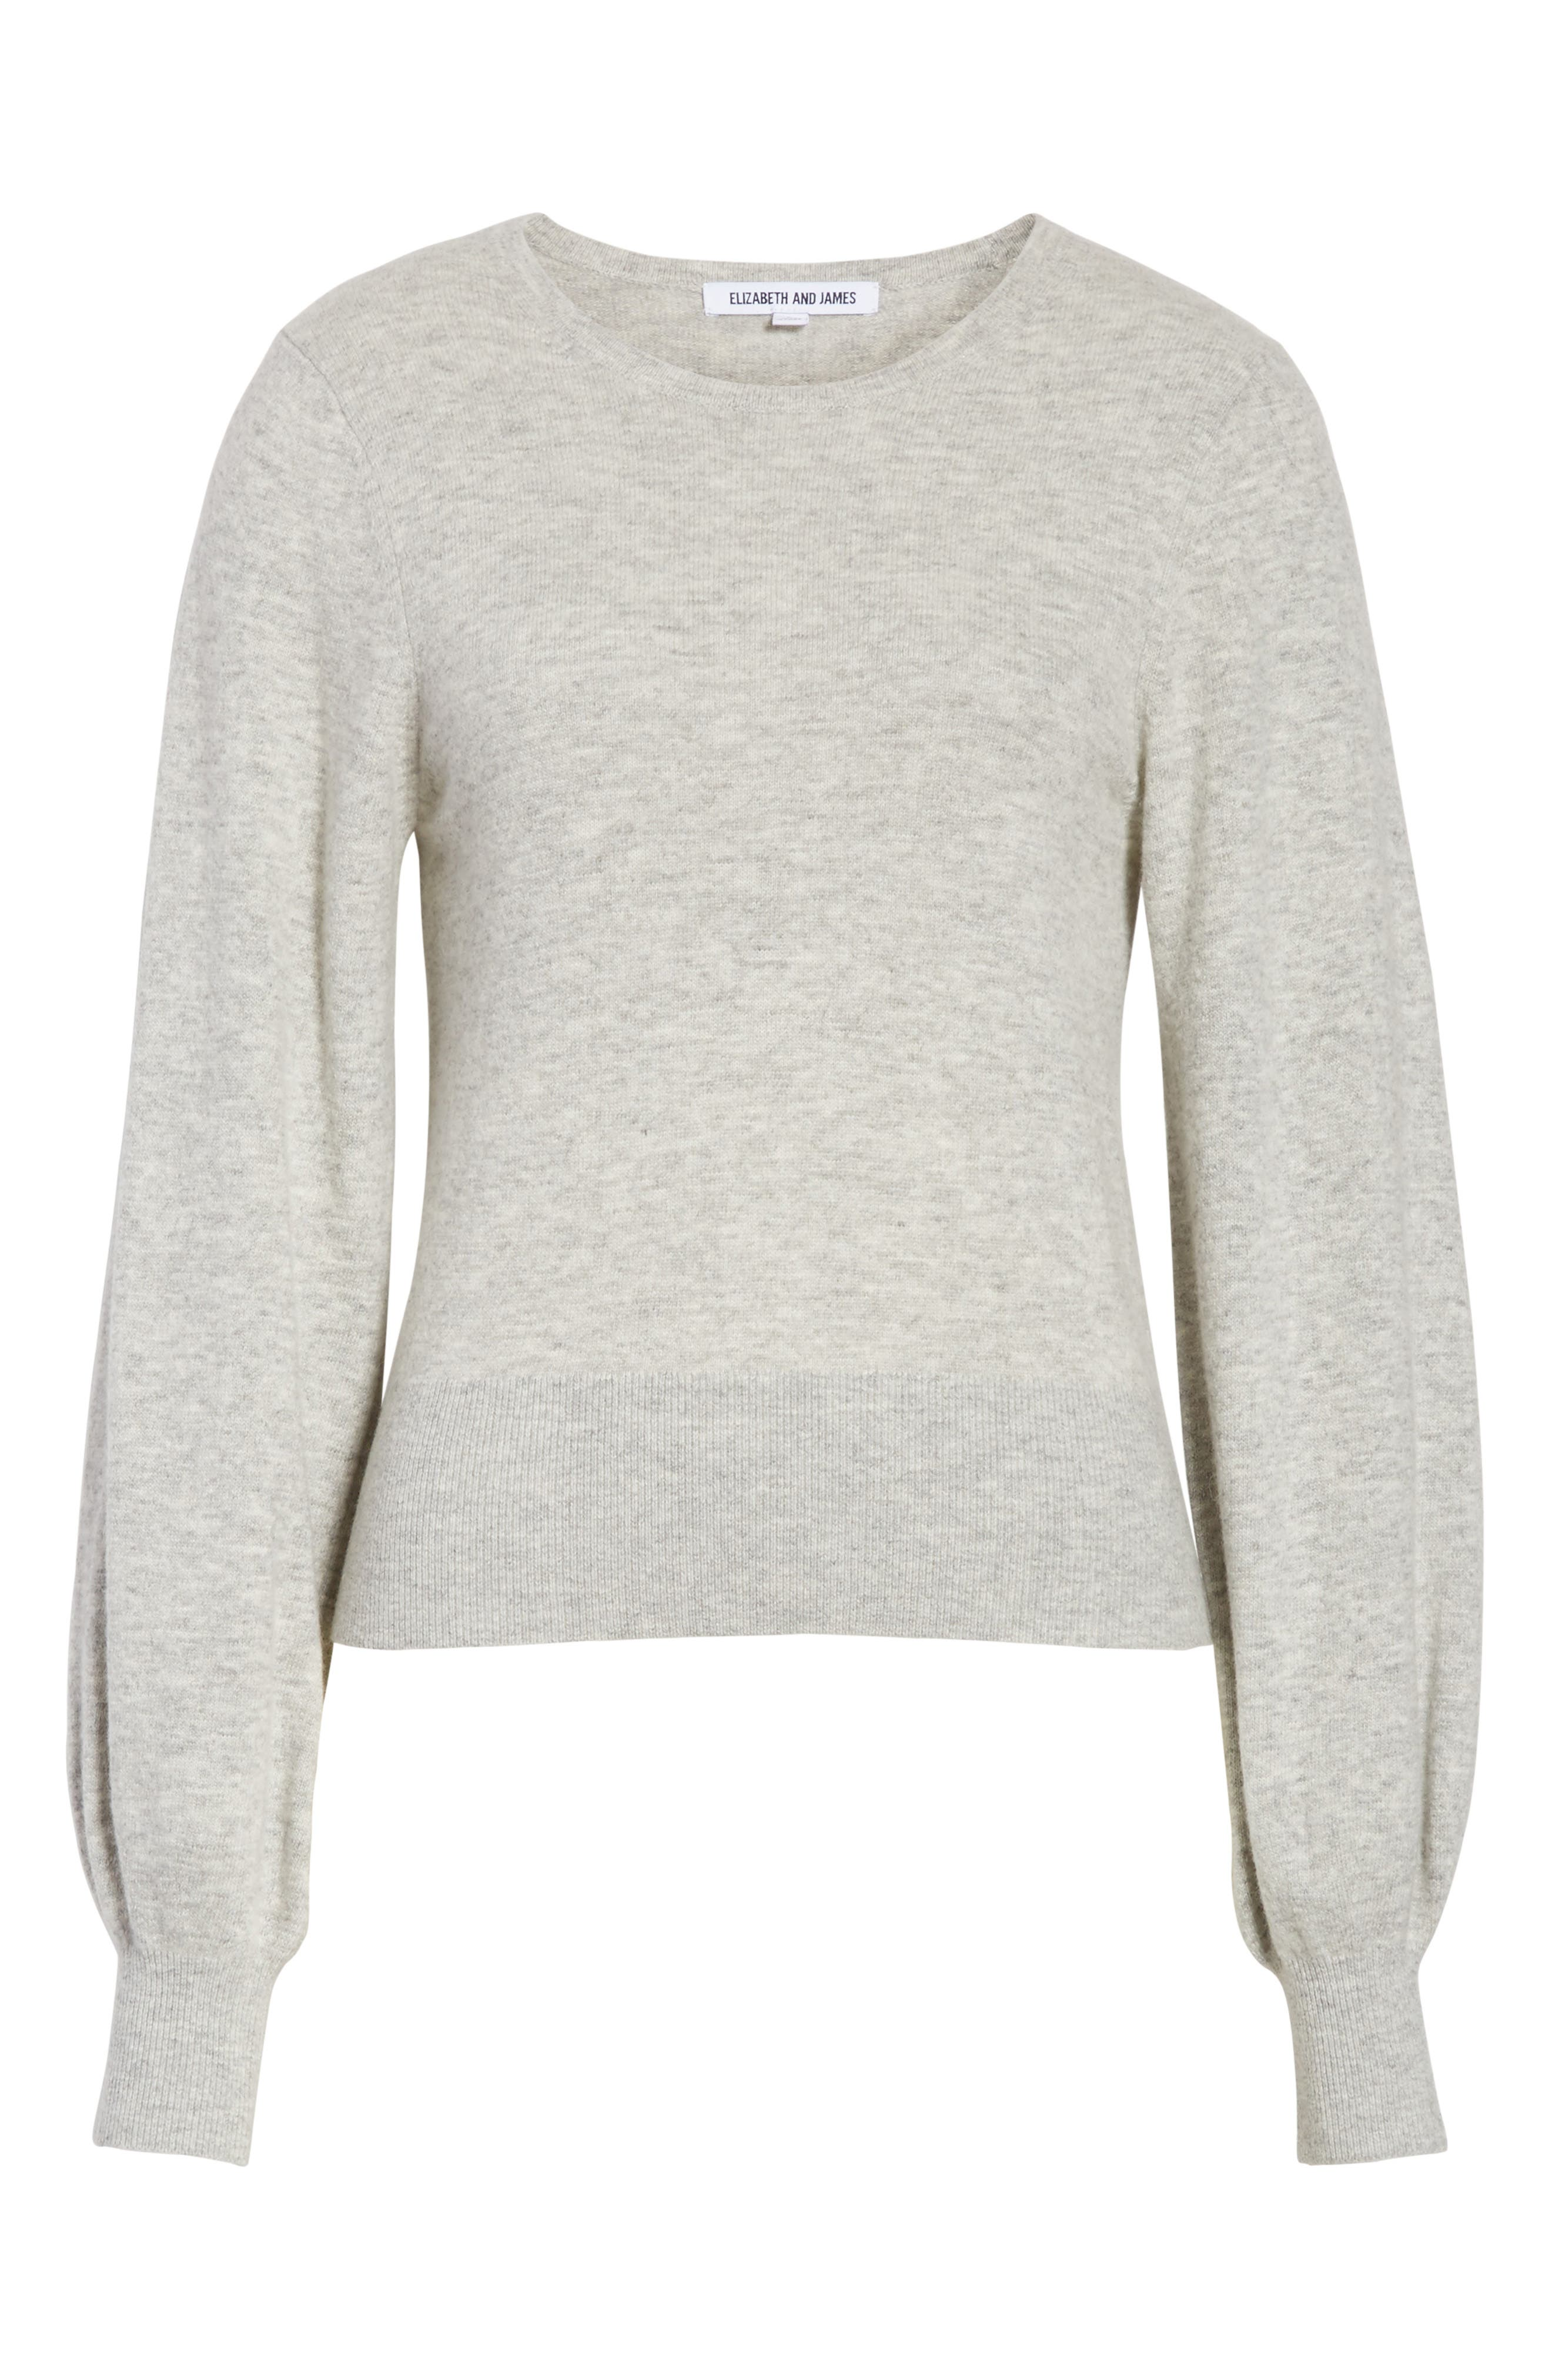 Bretta Sweater,                             Alternate thumbnail 7, color,                             Heather Grey